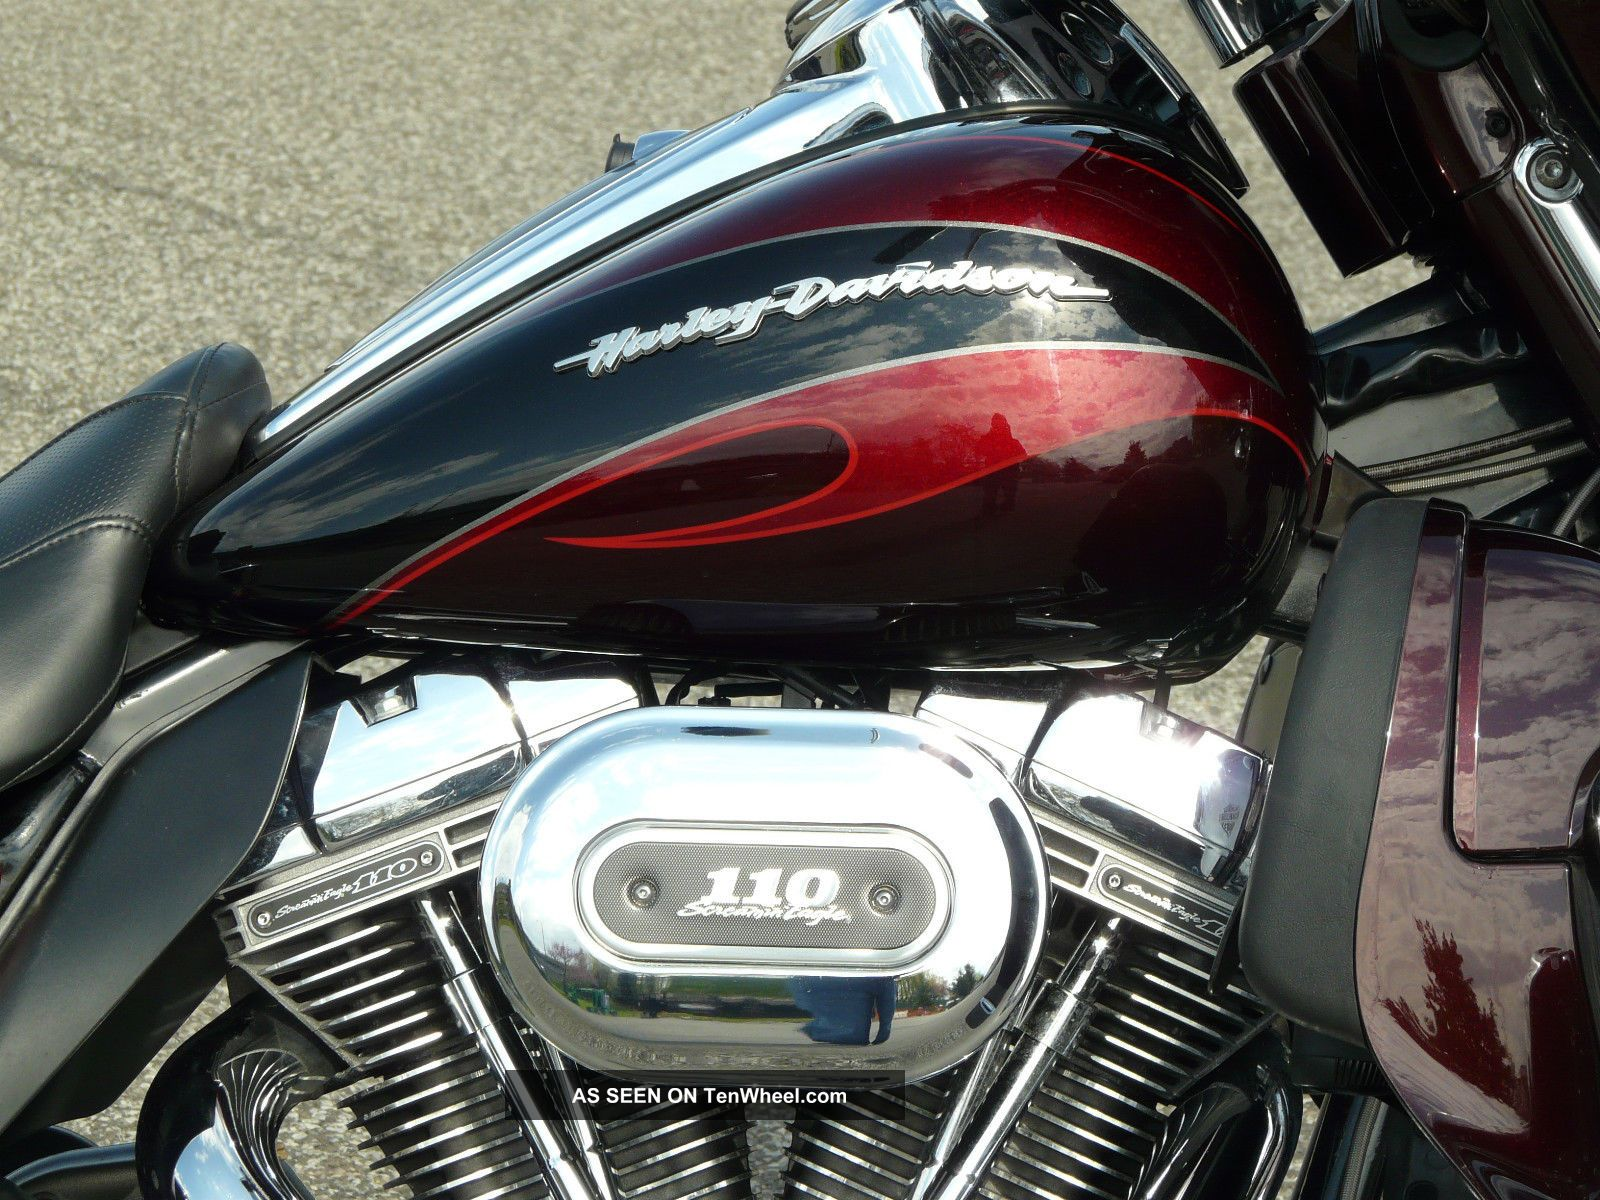 Electra Glide Ultra Classic Cvo 110 Screaming Eagle Touring photo 12